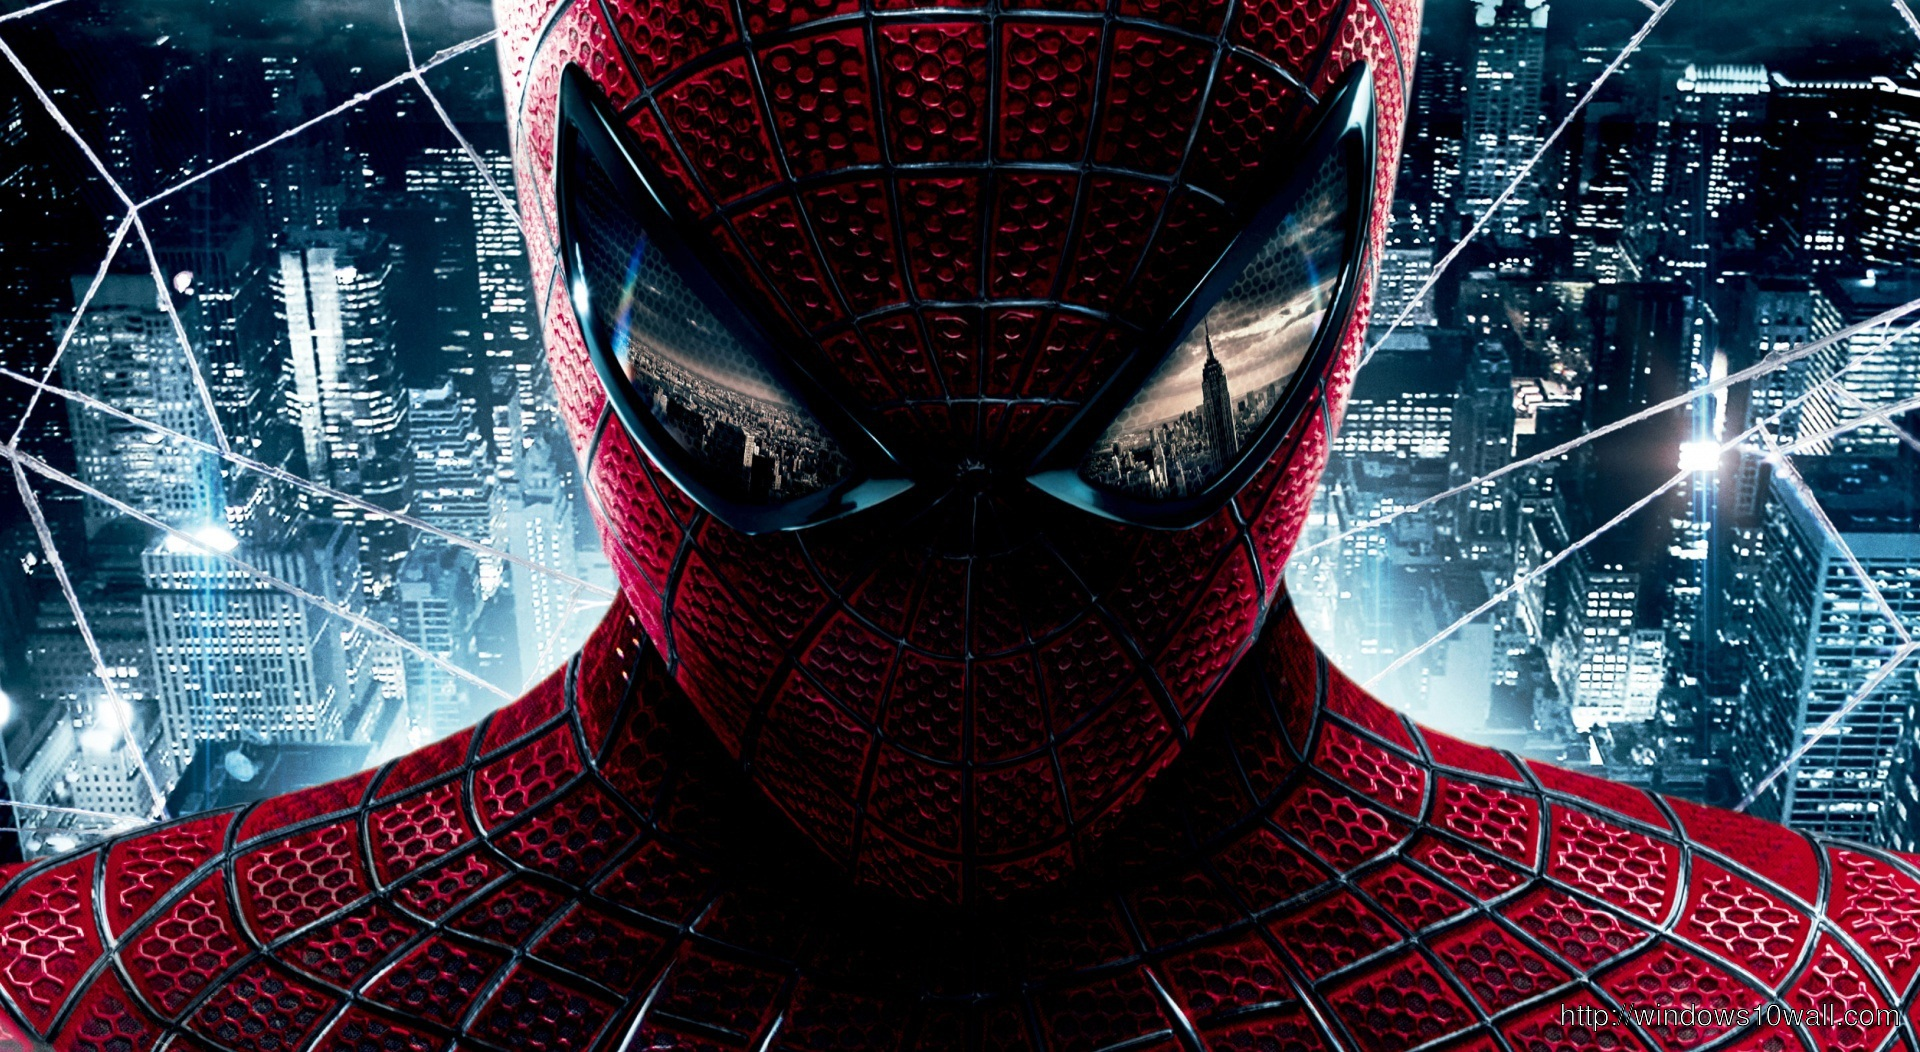 So Close to Amazing Spiderman Wallpaper